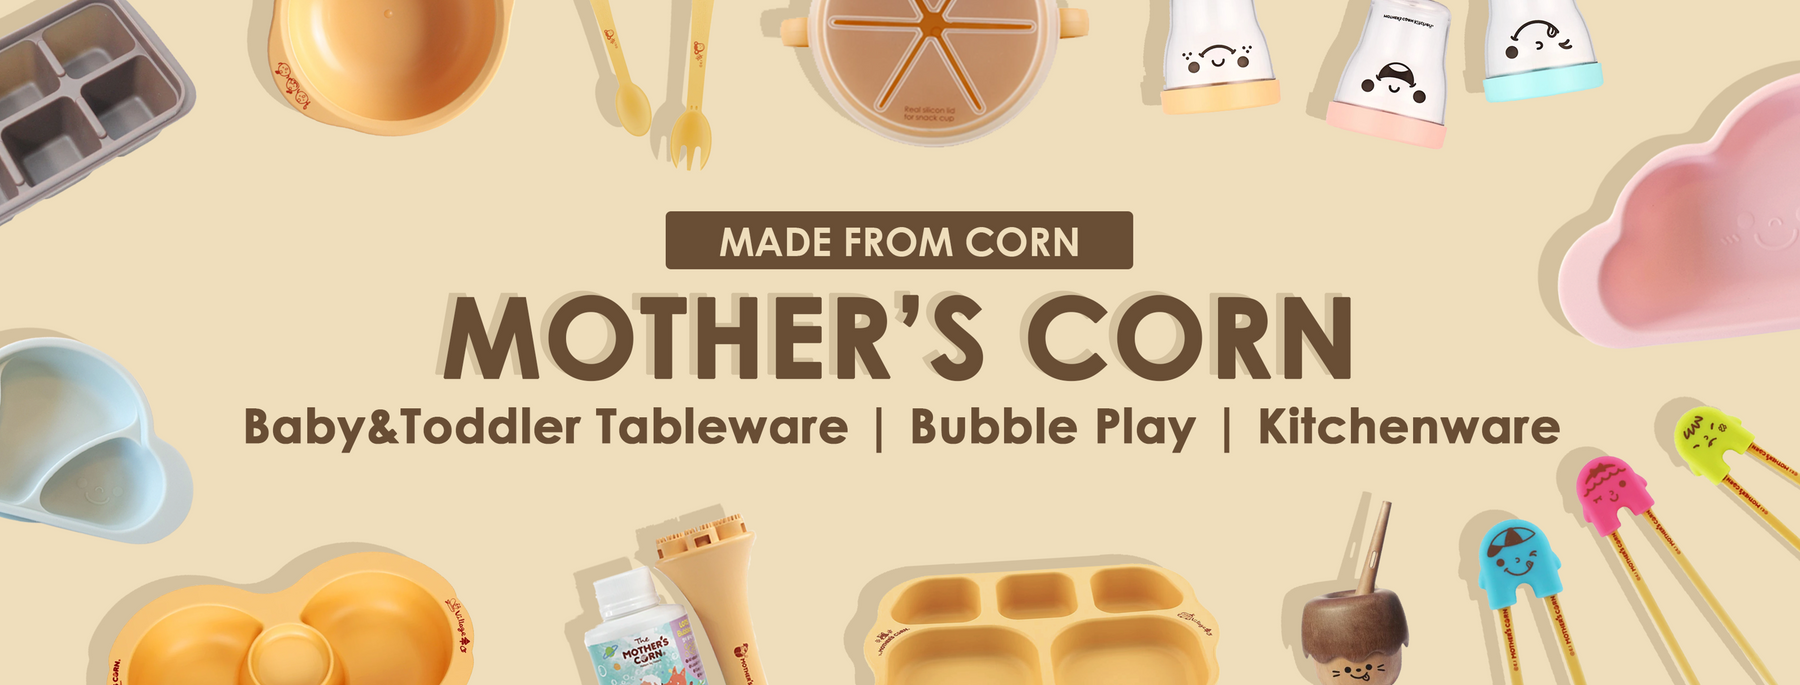 Mother's Corn Singapore: The Best baby feeding products